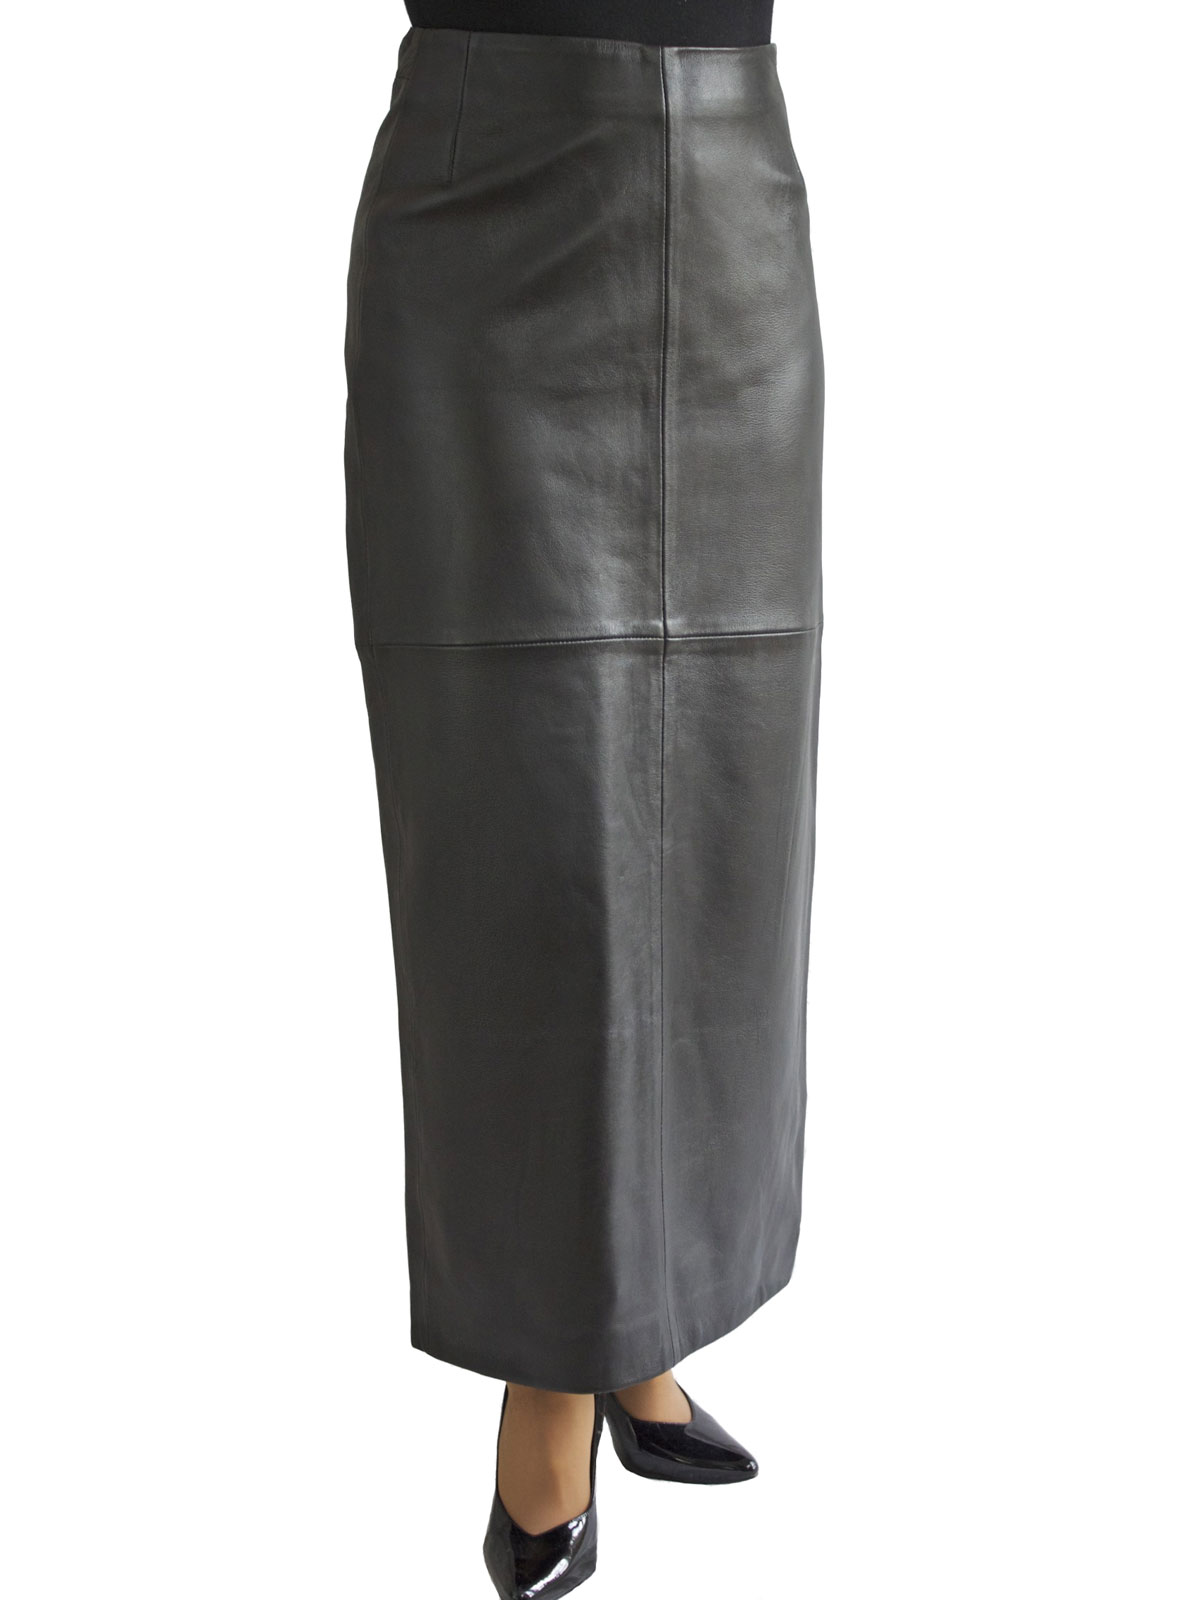 Find great deals on eBay for Leather Skirt. Shop with confidence.